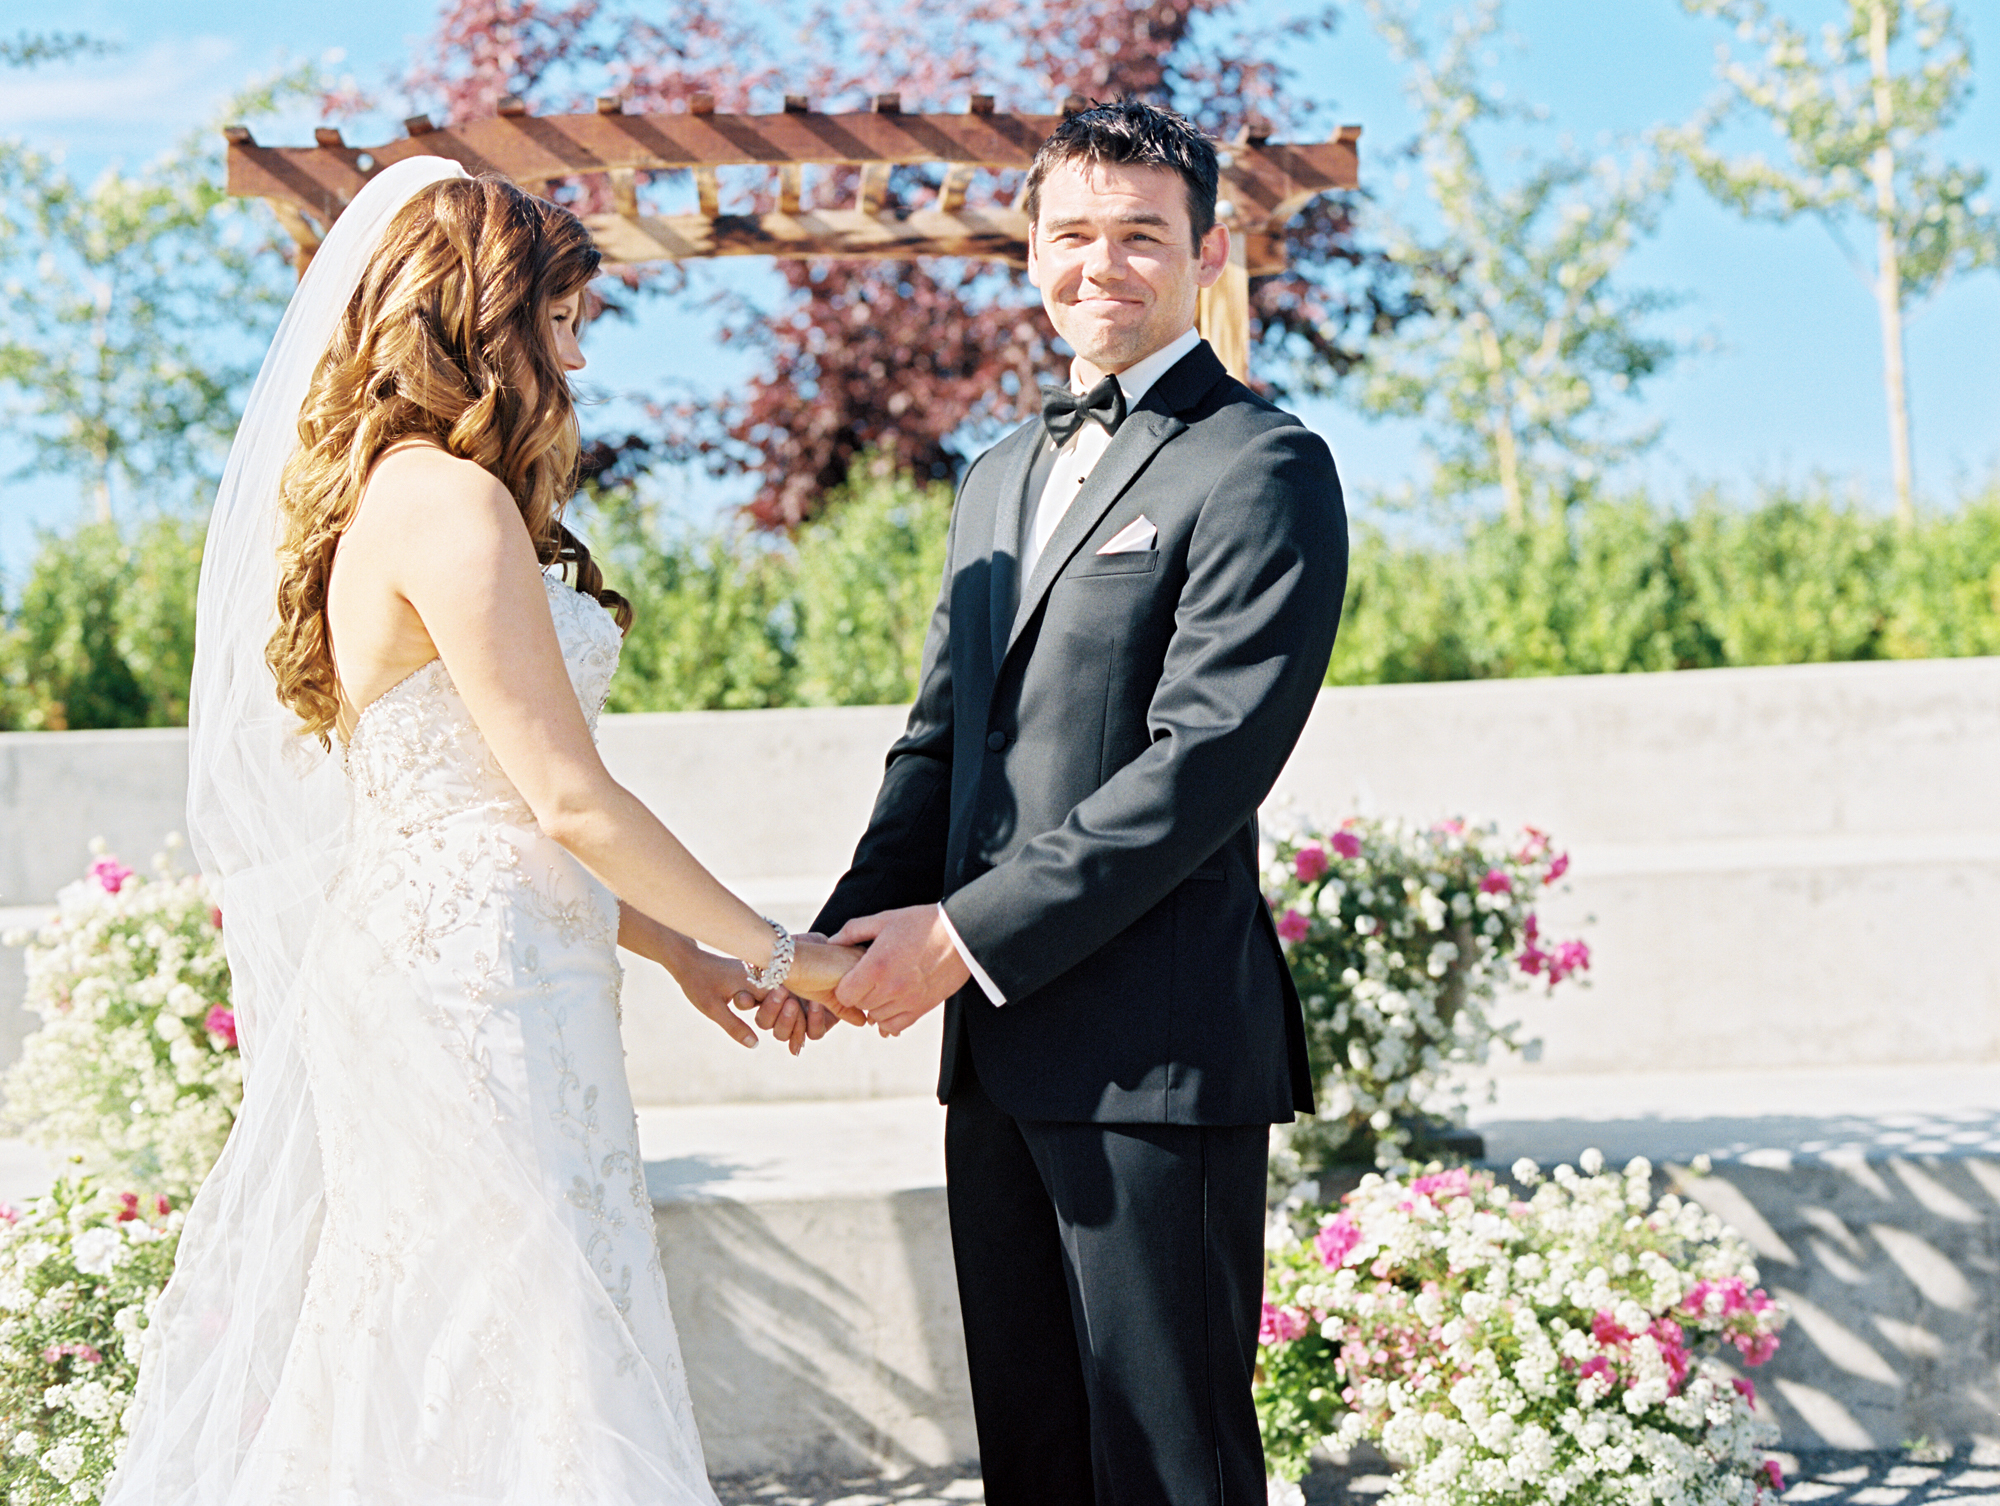 Bride and groom exchanging vows during wedding ceremony